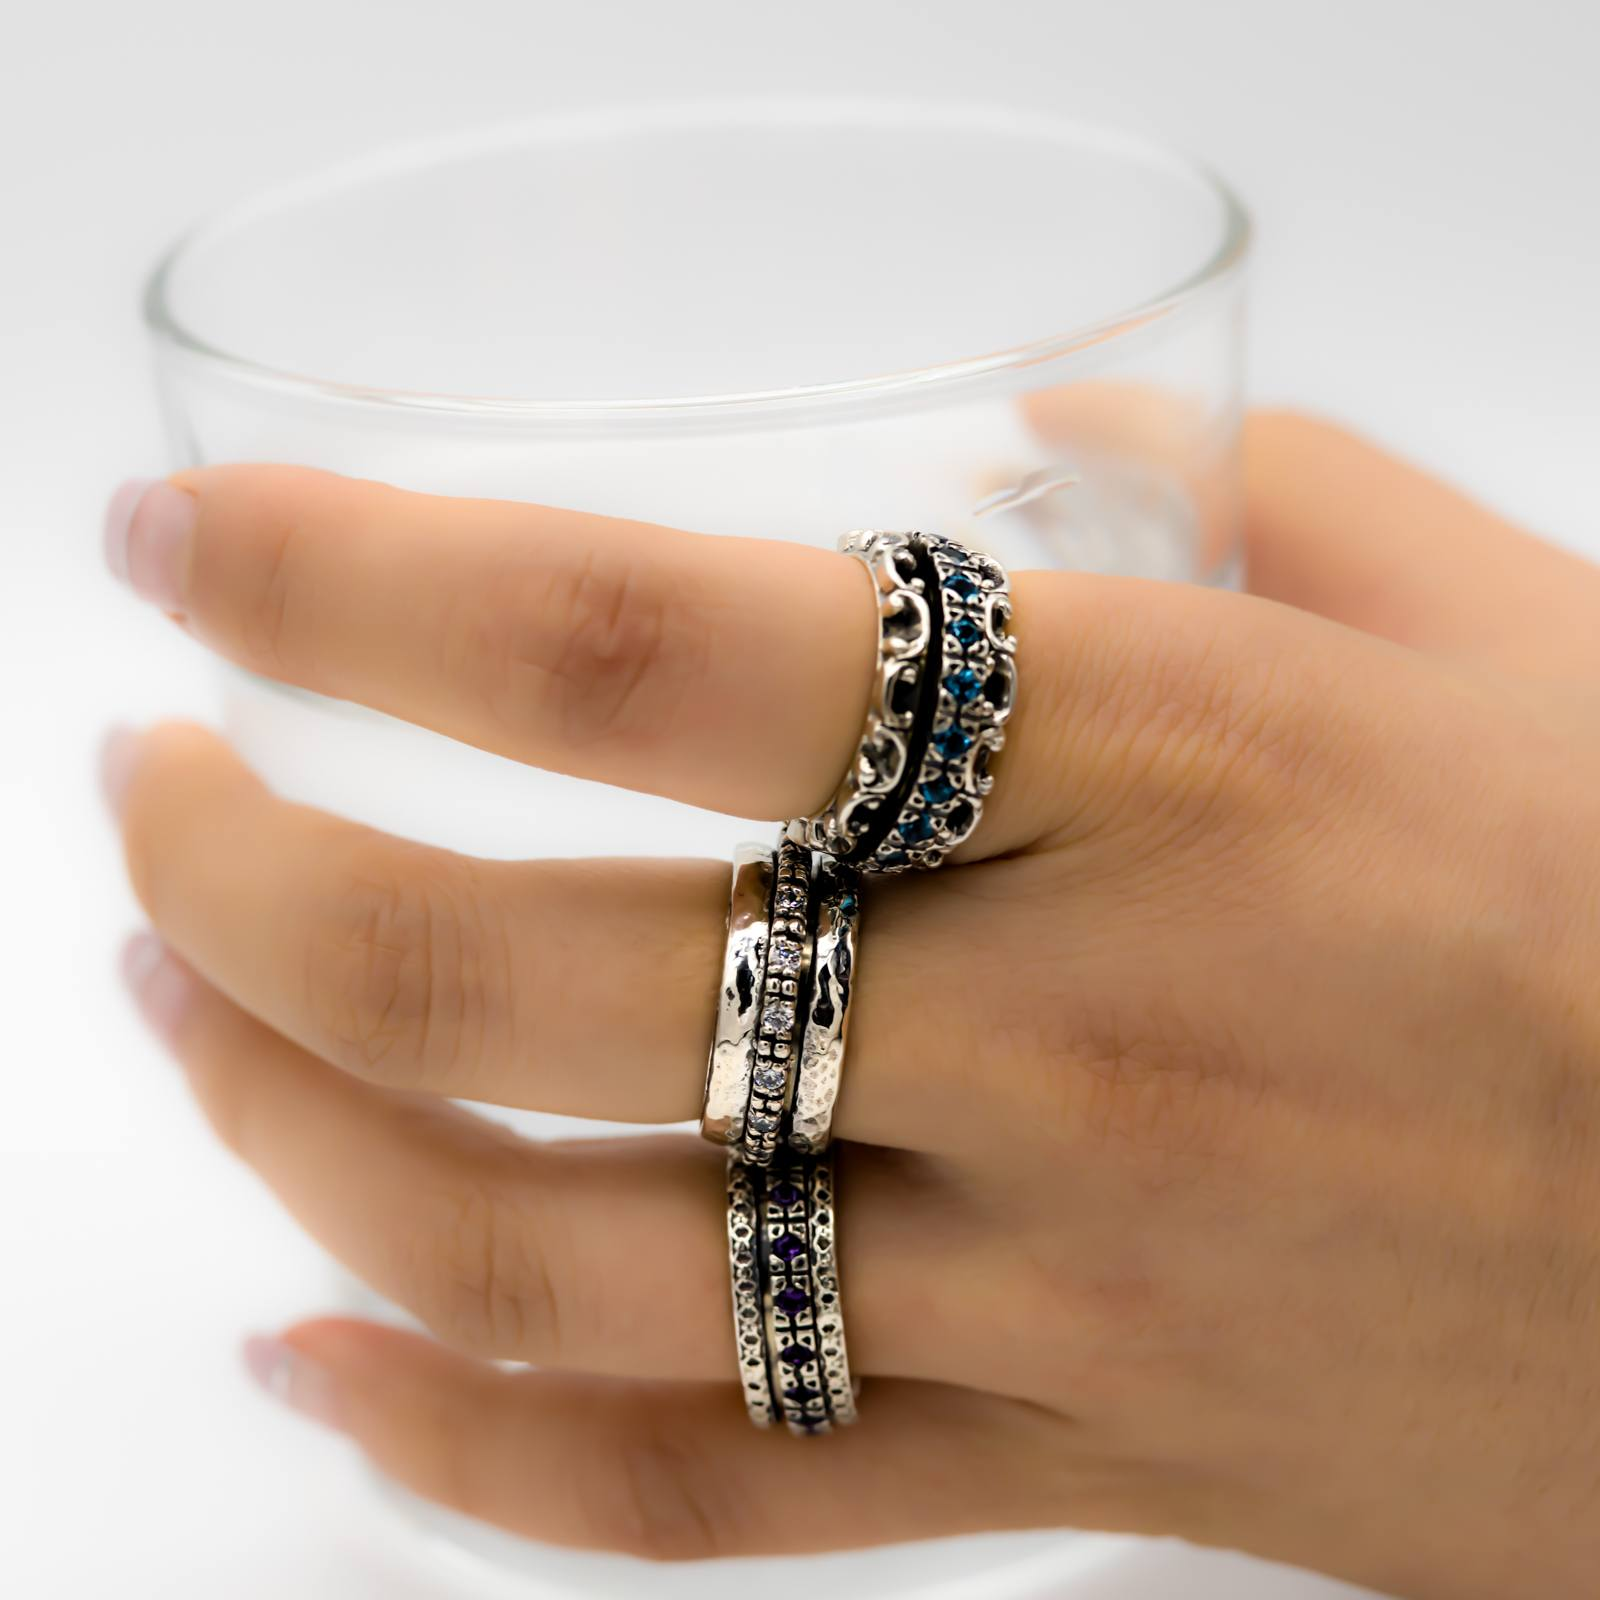 Meditation Spinner Rings holding Glasses